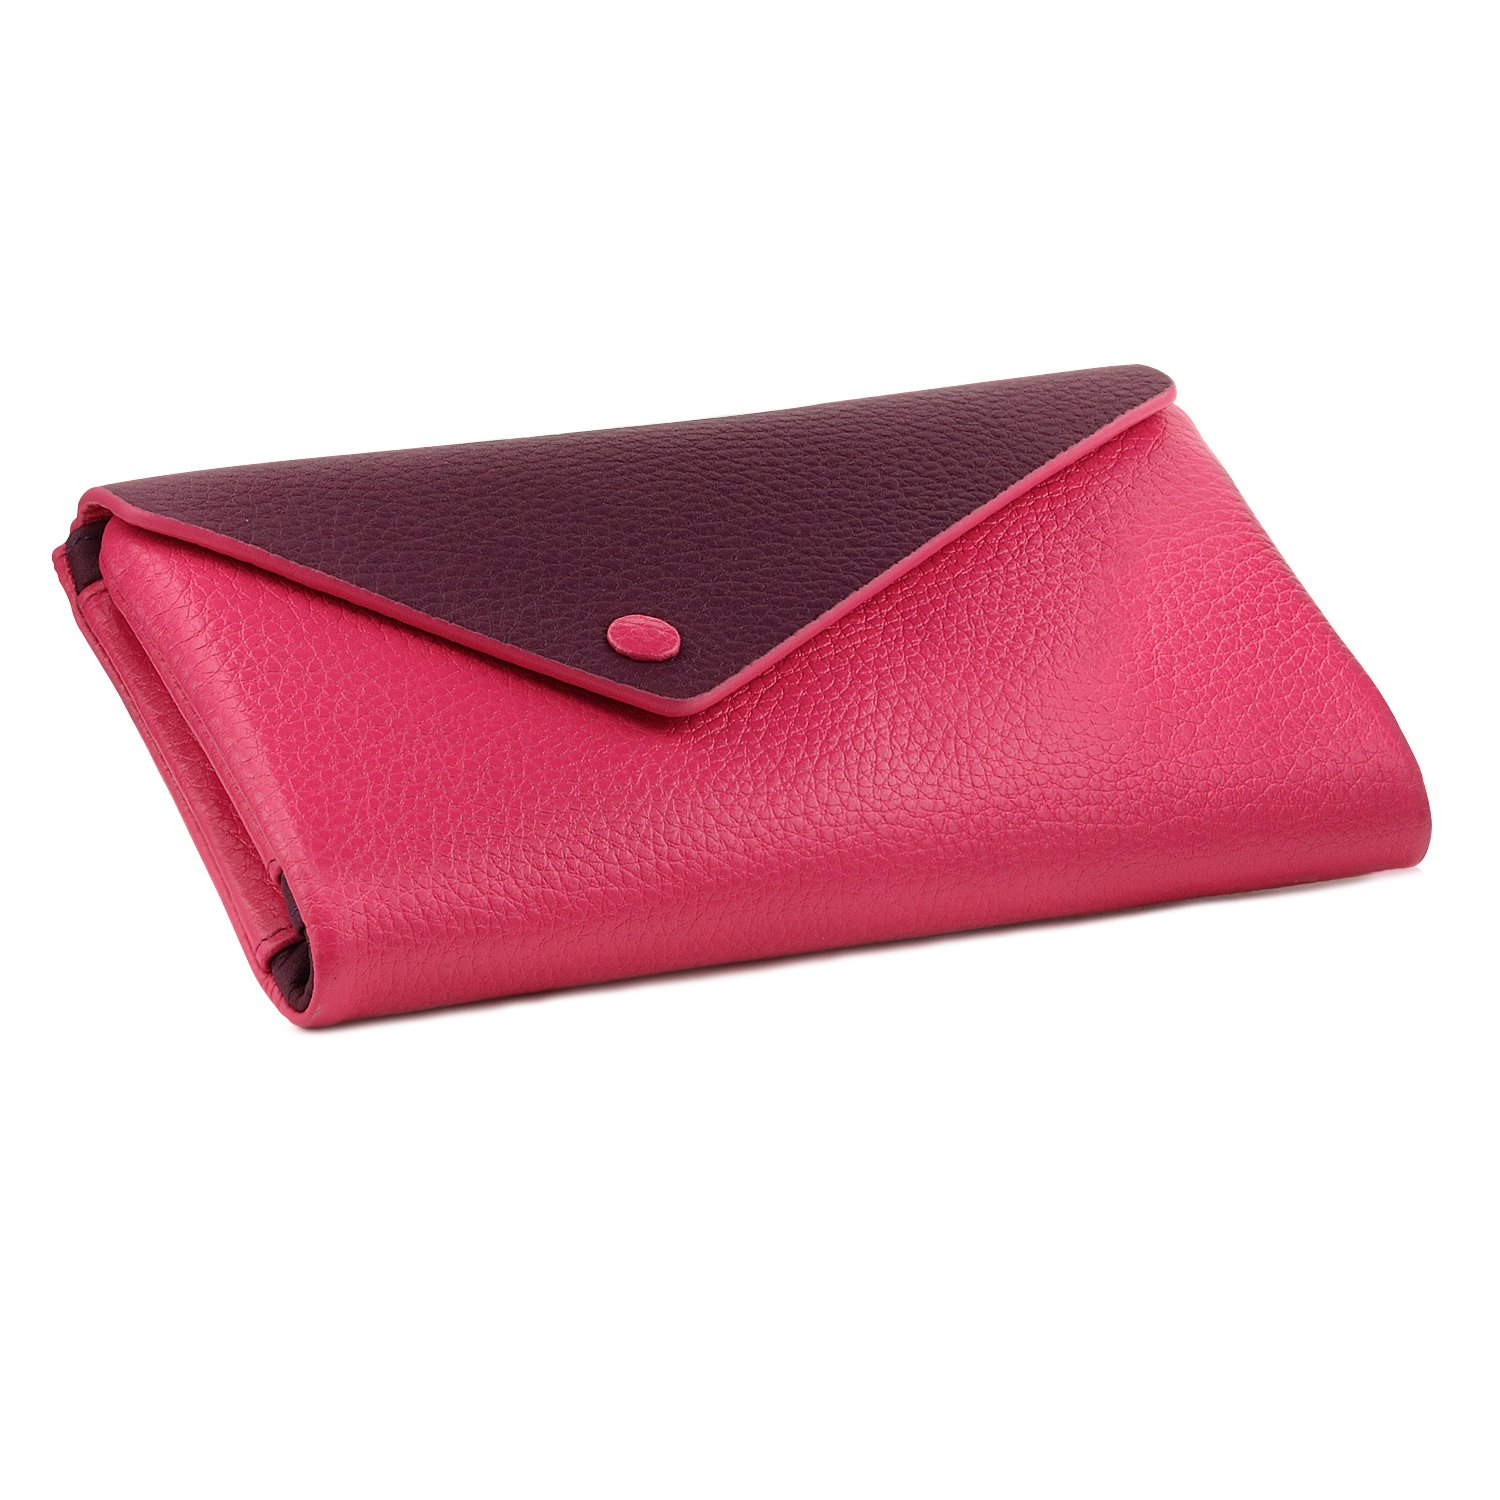 OTTO Genuine Leather Envelope Wallet with Phone Compatible Slots - RFID Blocking - Unisex (Purple & Pink)